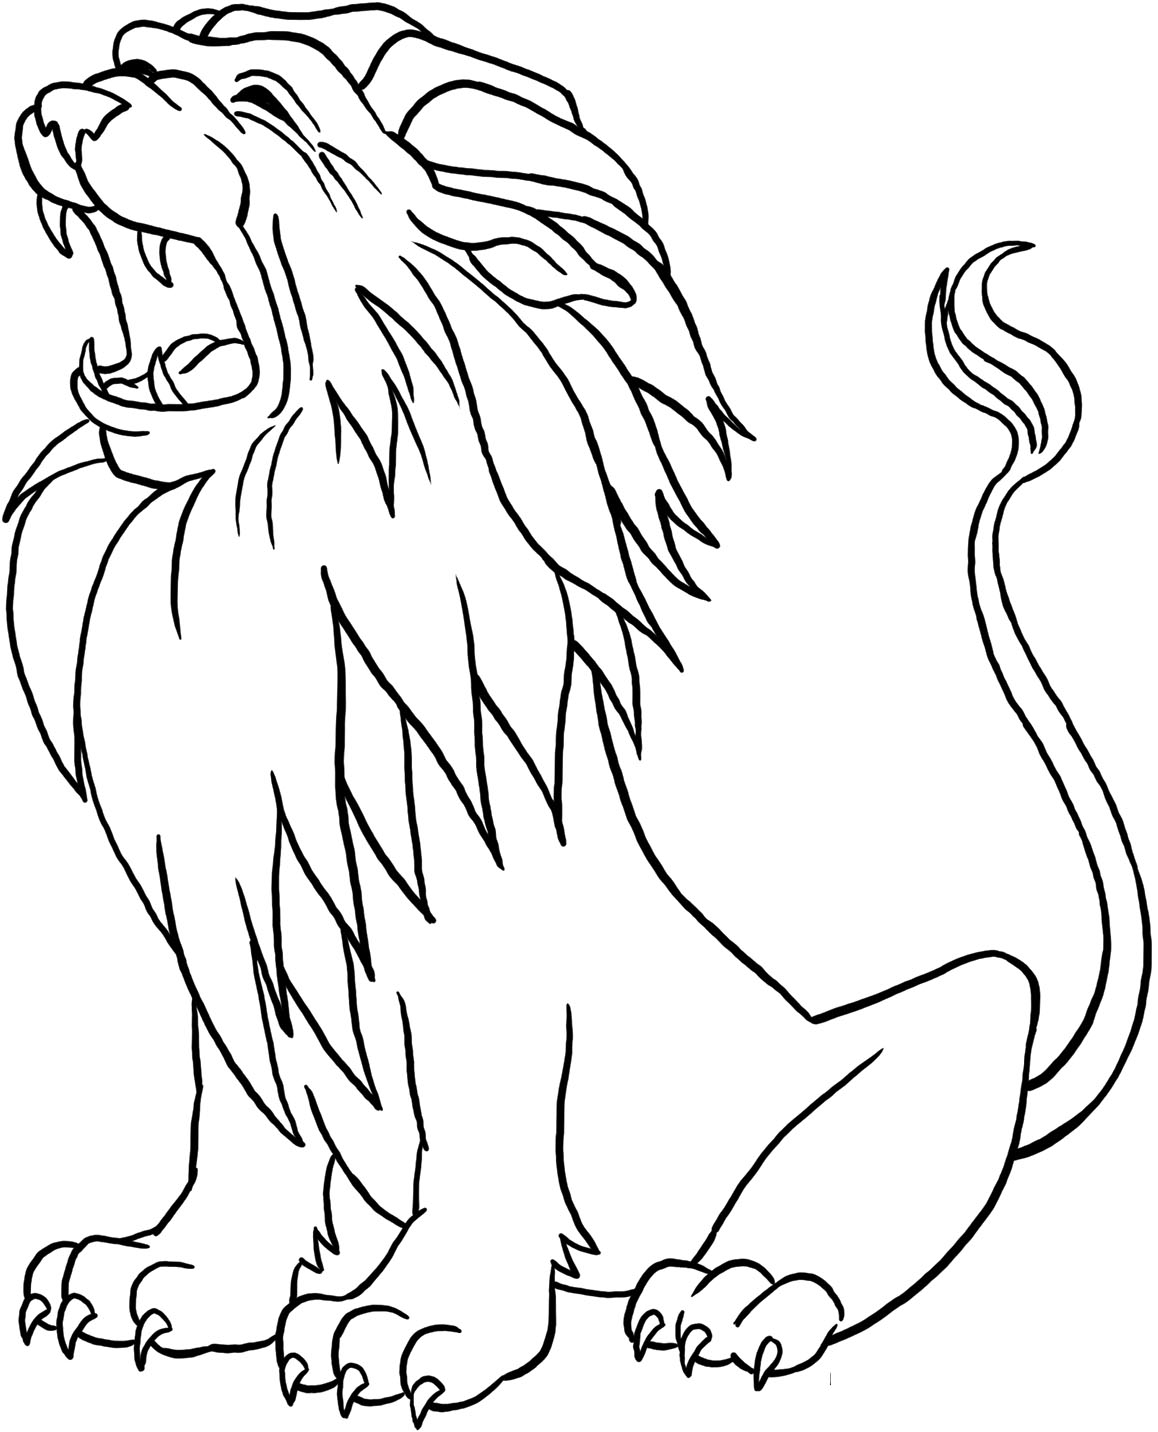 lion coloring lion coloring pages to download and print for free lion coloring